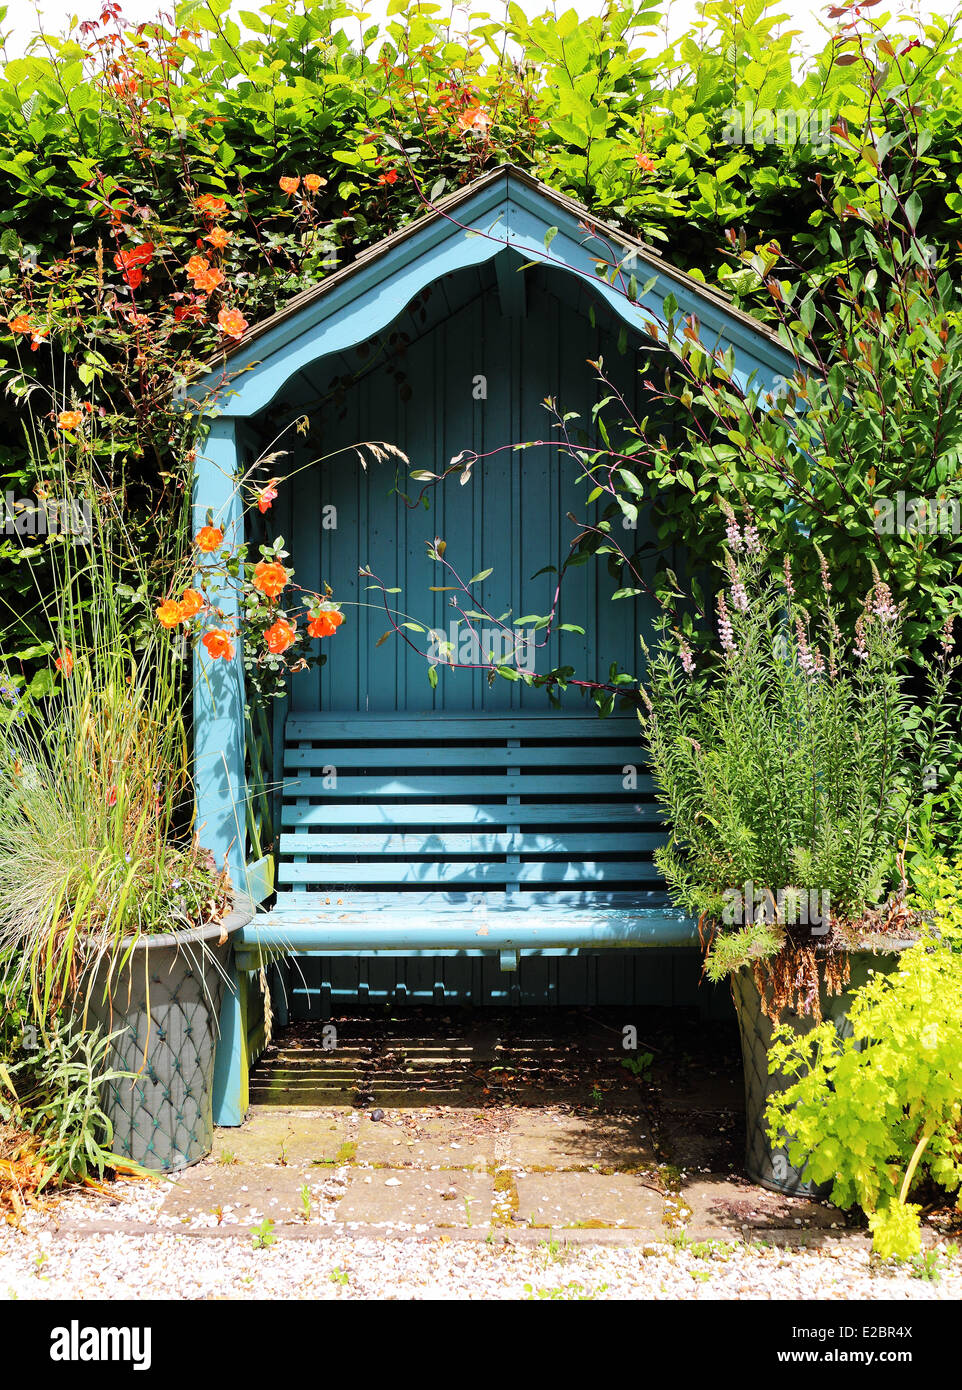 Covered Seat In An English Garden With A Hedge And